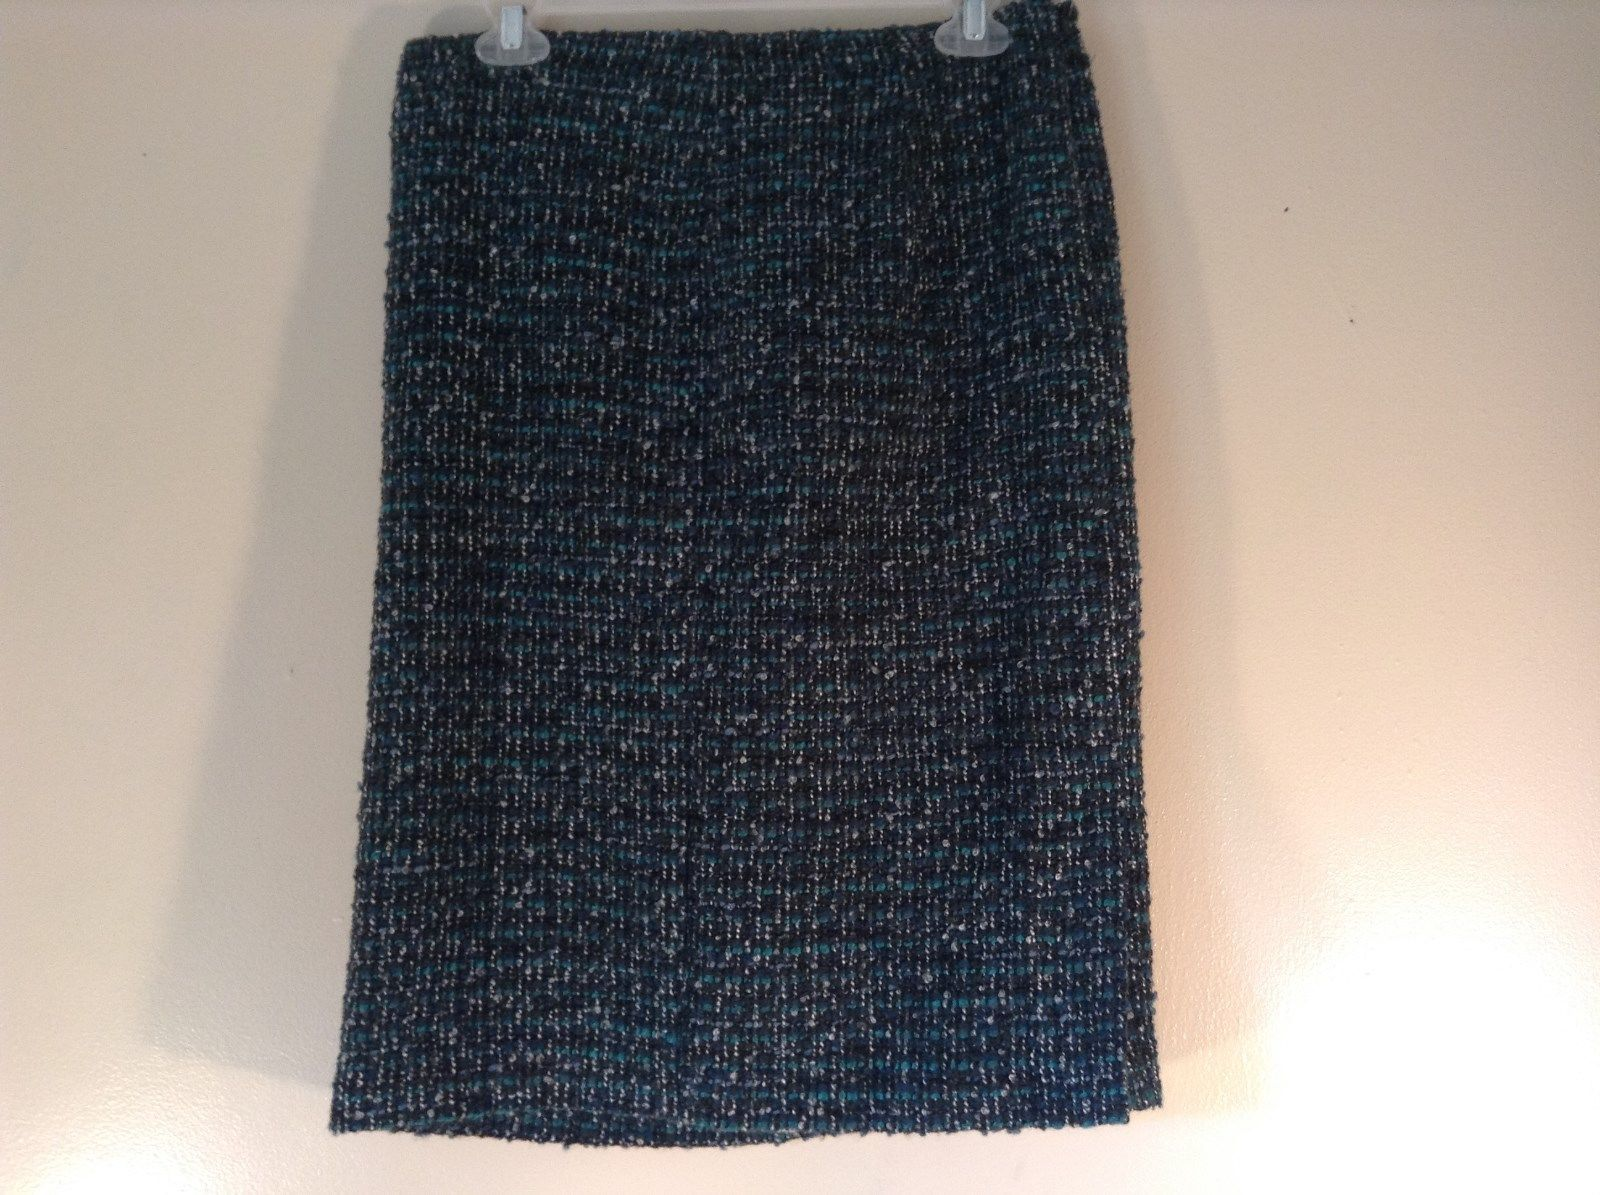 Size 4 Talbots Green Blue Fuzzy Thick Warm Material Skirt Wool Blend